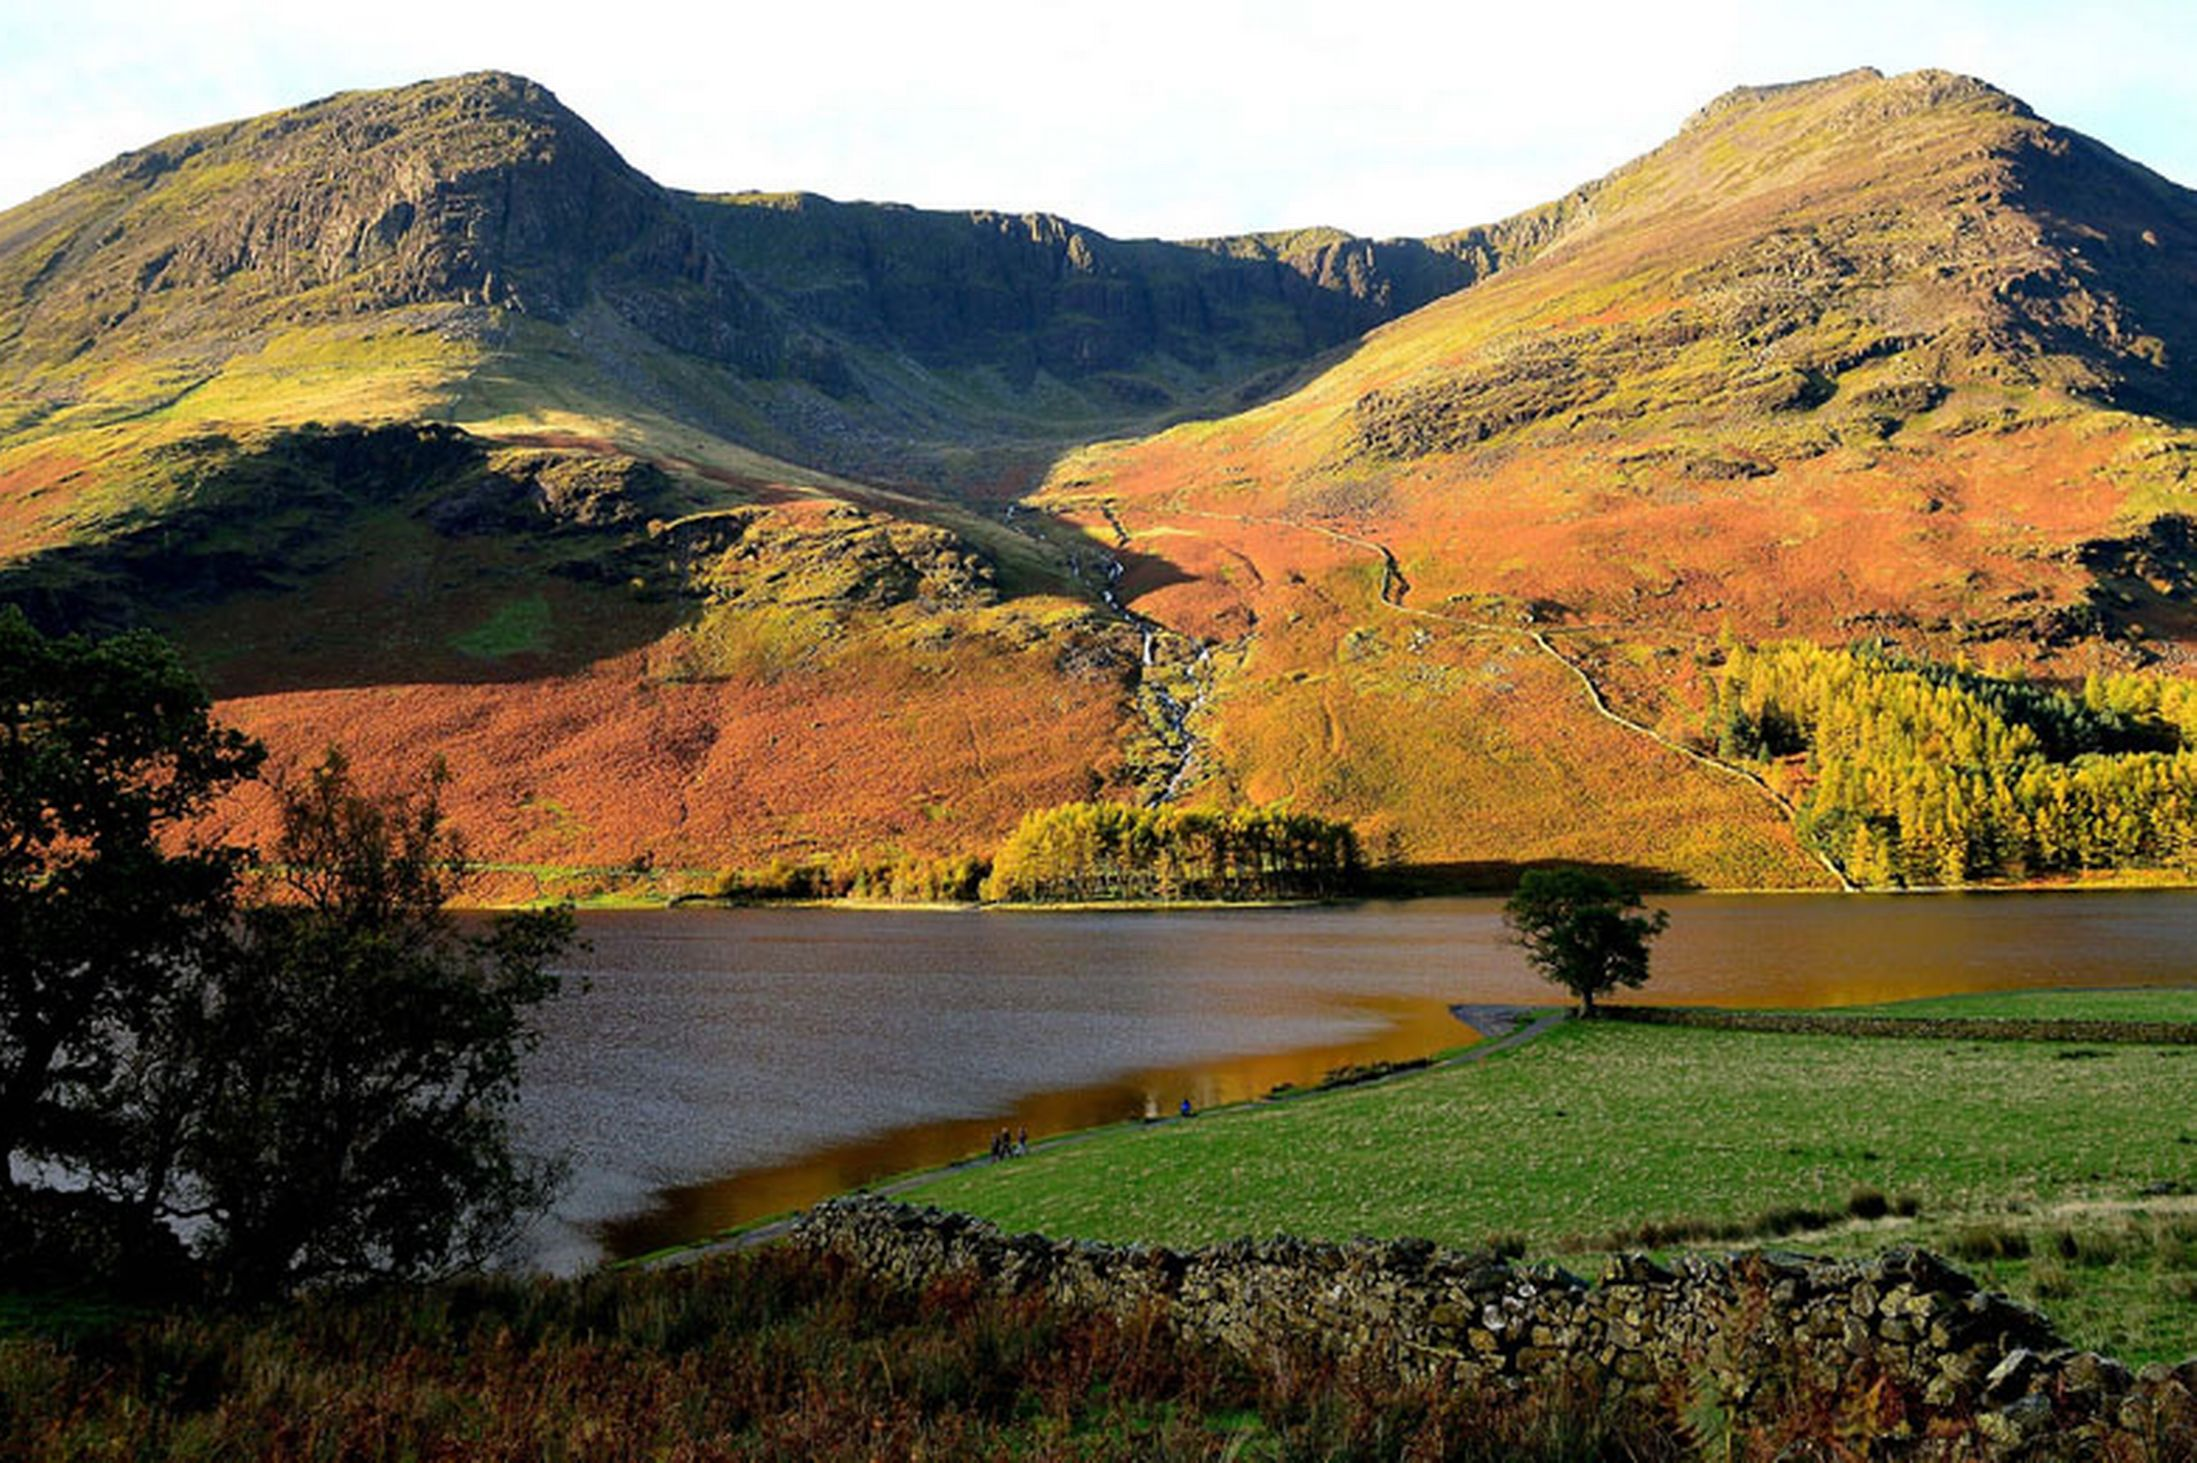 The-sun-picks-out-the-Autumn-colours-on-the-peaks-near-Buttermere-lake-in-Cumbria-24th-October-2641170